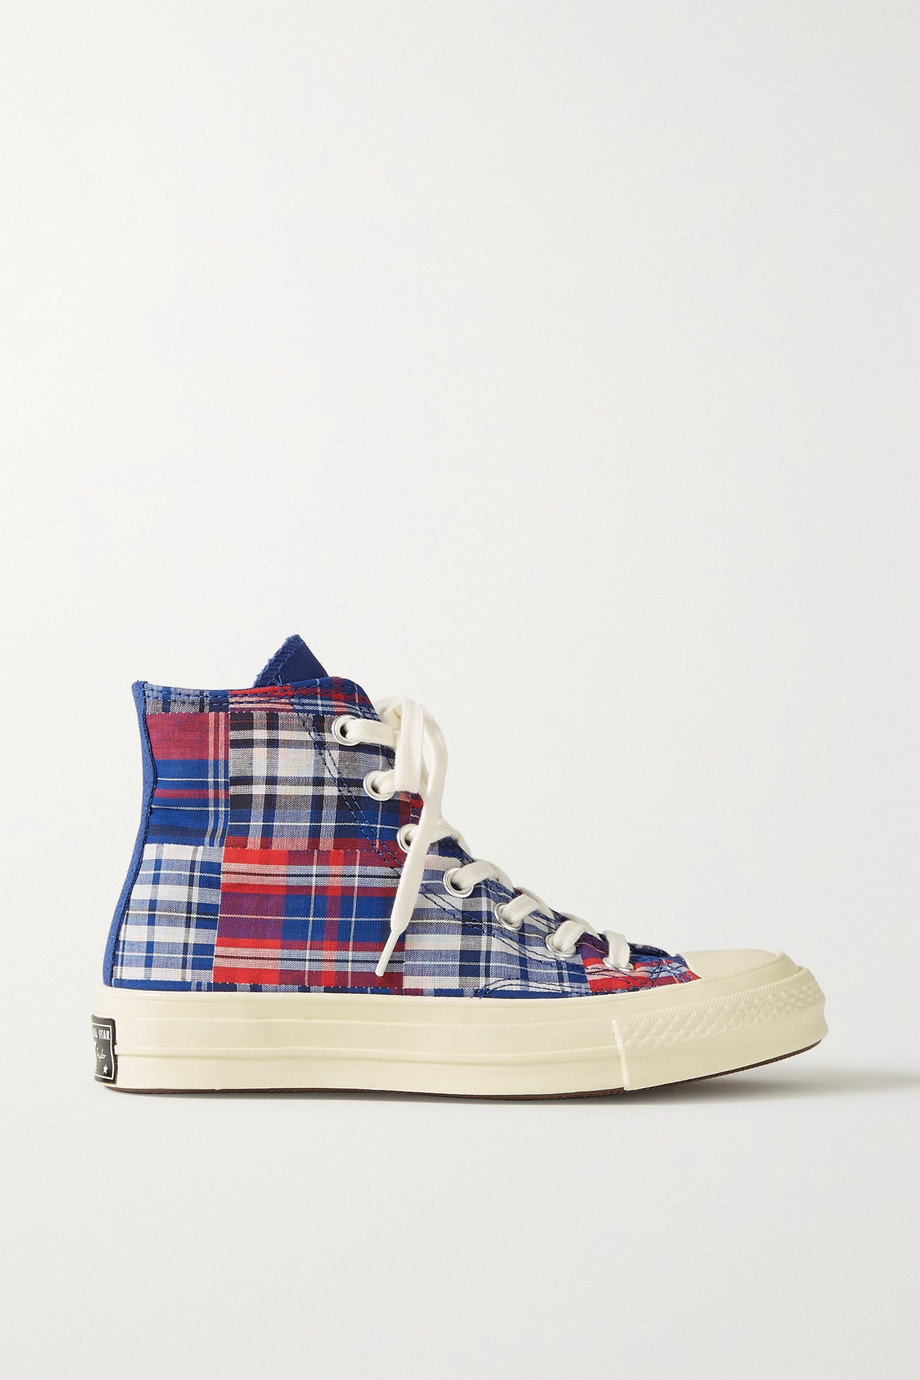 Converse Twisted Prep Chuck 70 checked canvas high-top sneakers